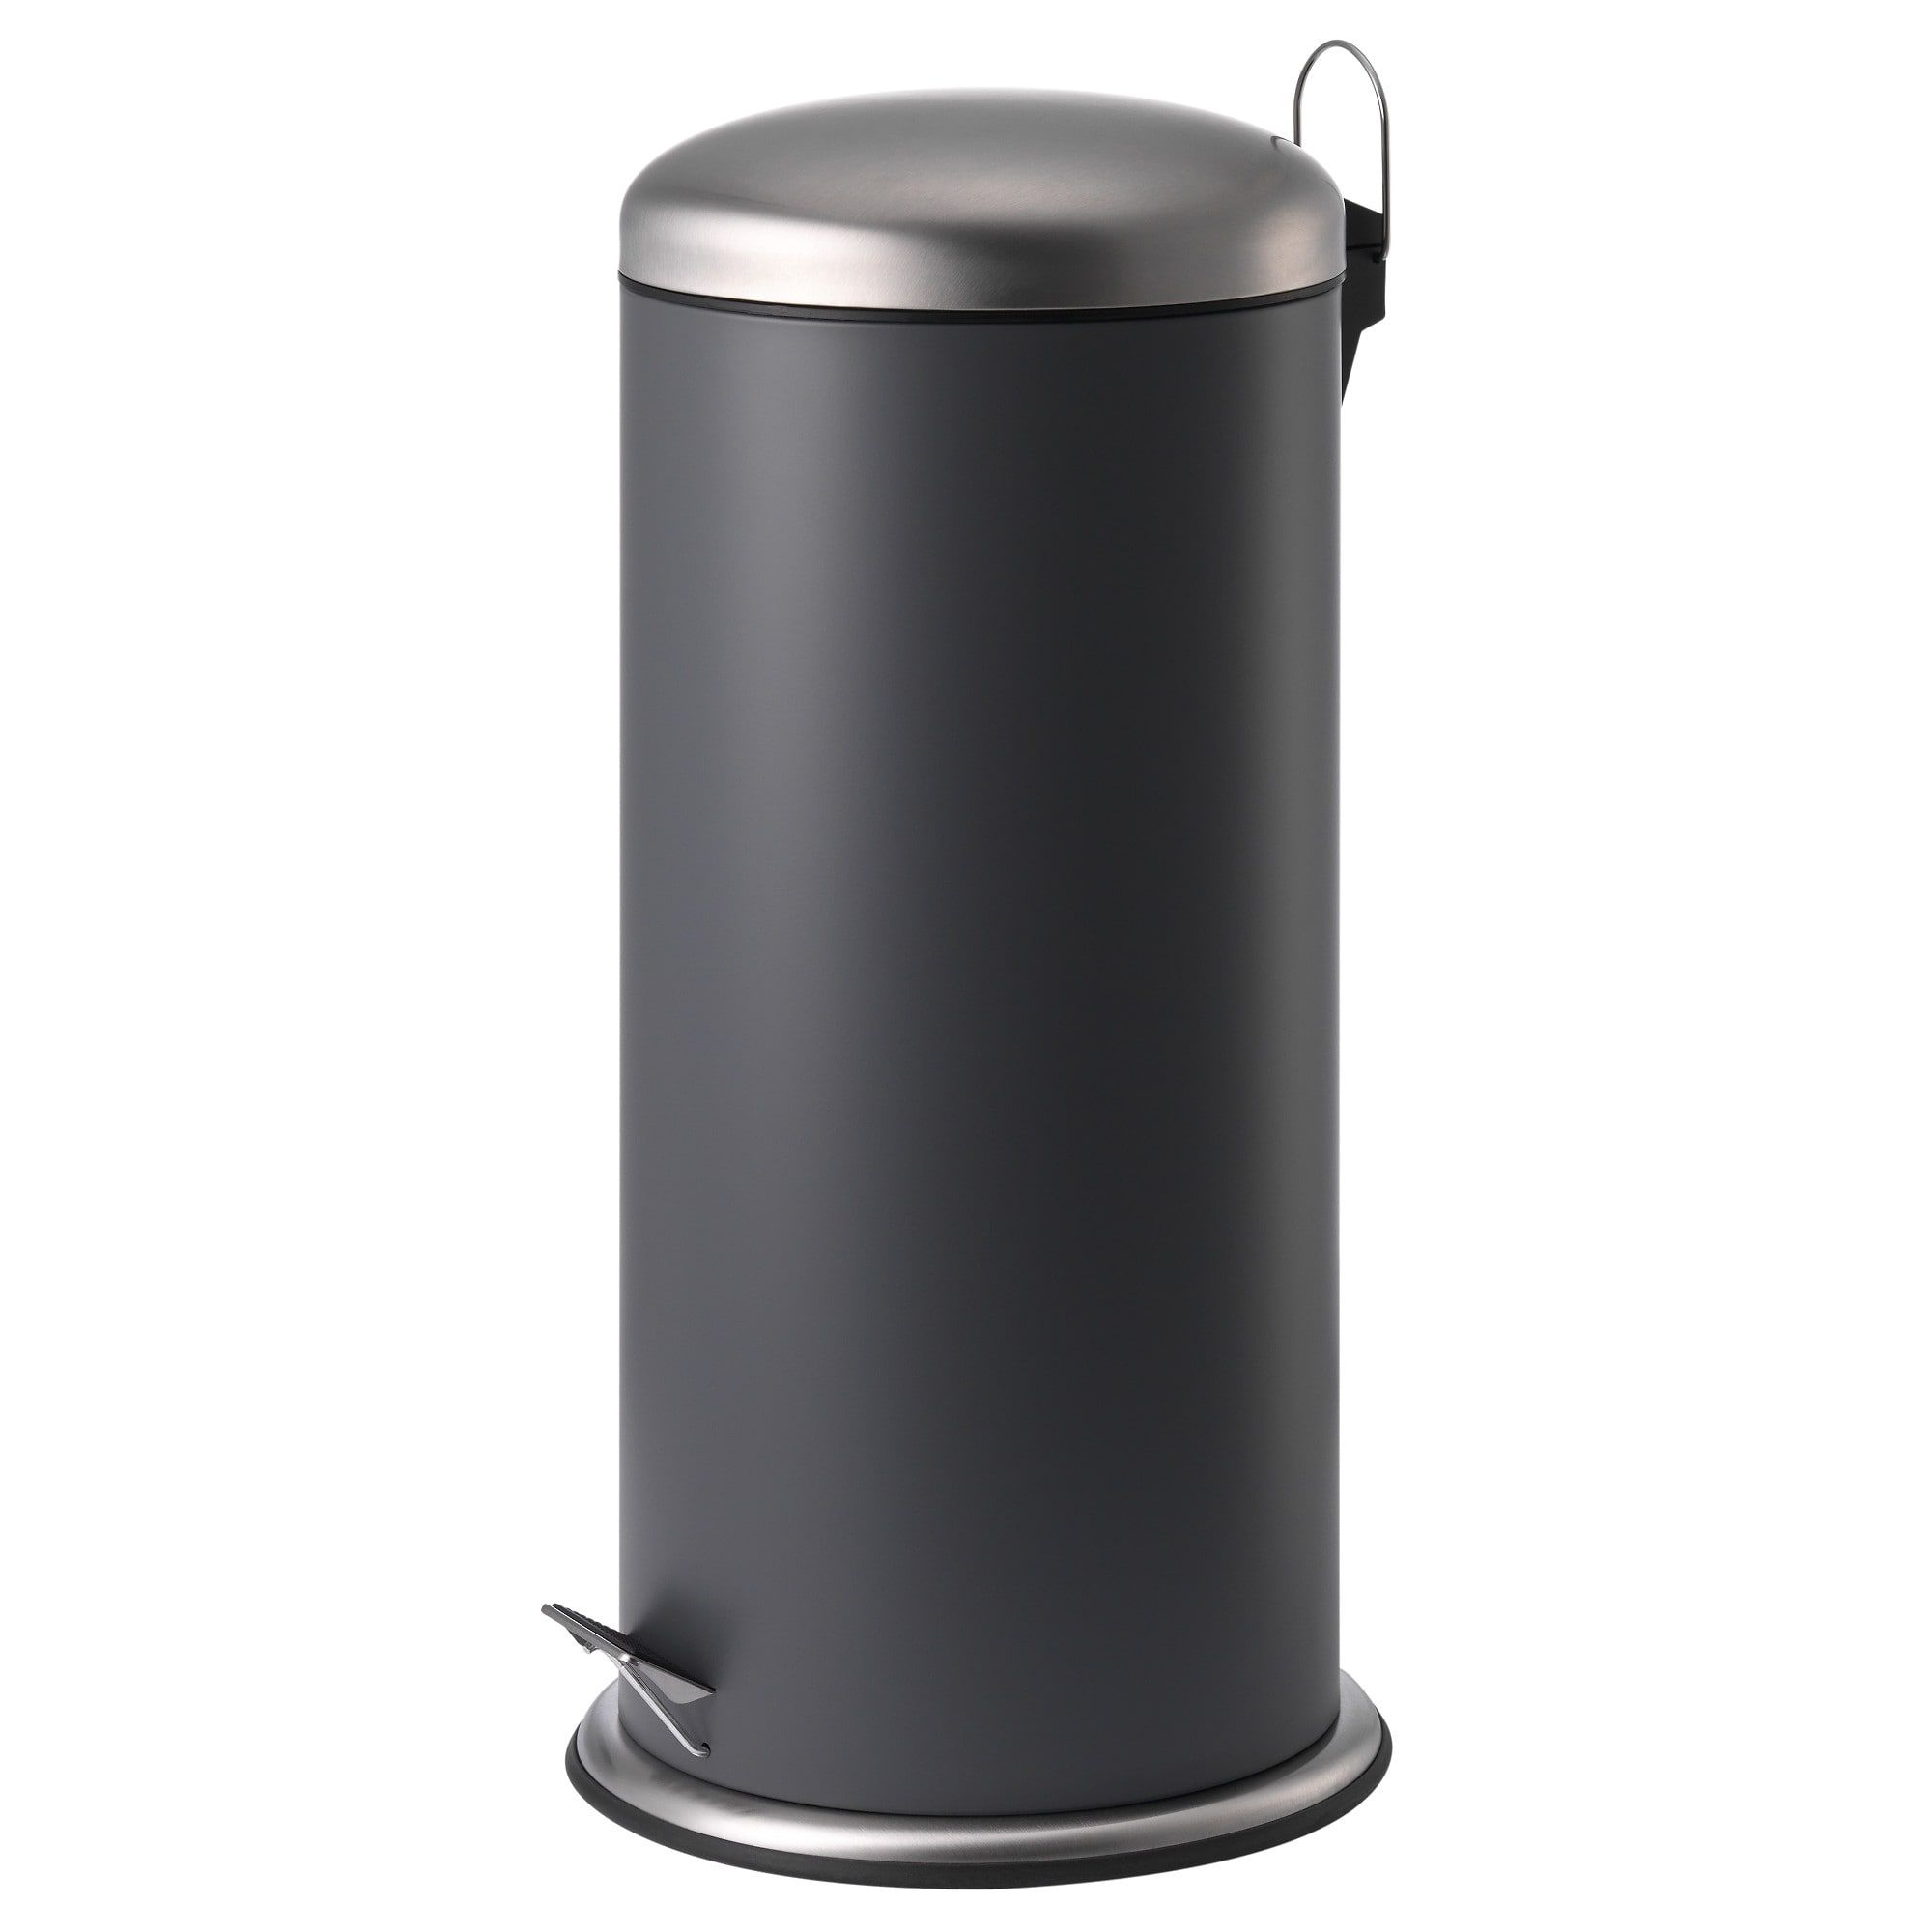 Mjosa Pedal Bin Dark Gray 8 Gallon Ikea Wash Basin